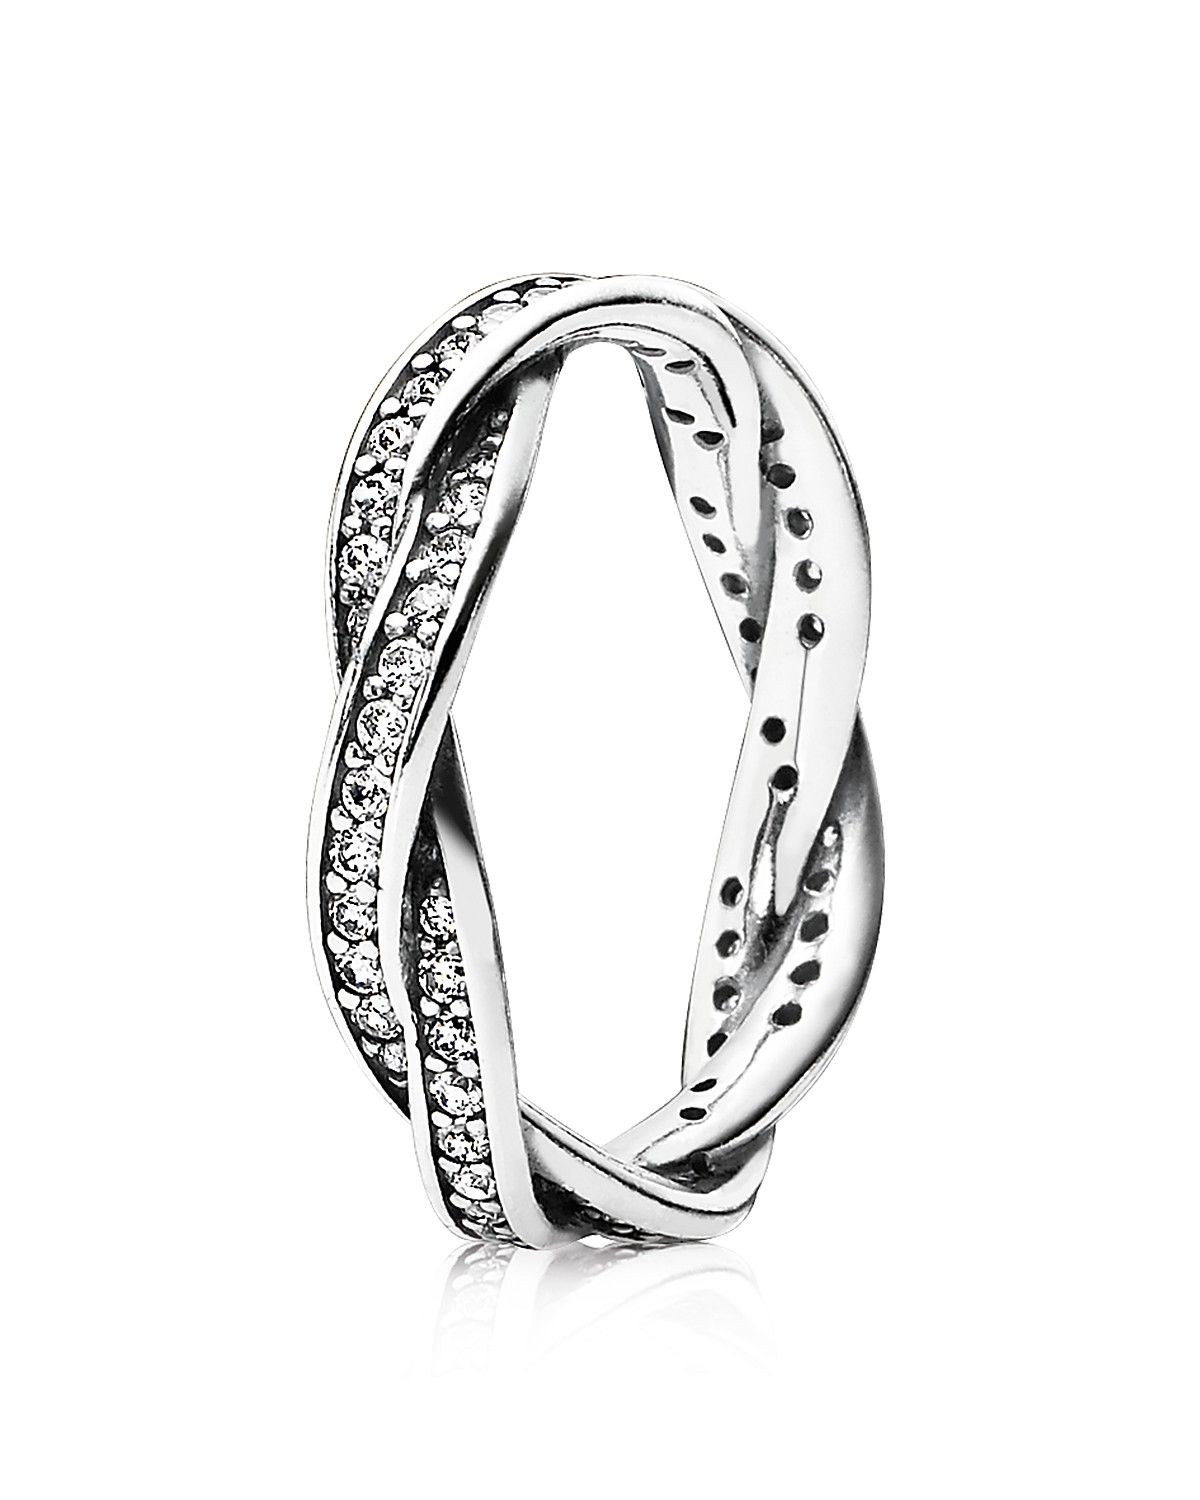 d9dab6e5c37aa Sterling Silver & Cubic Zirconia Twist of Fate Ring | My Style ...